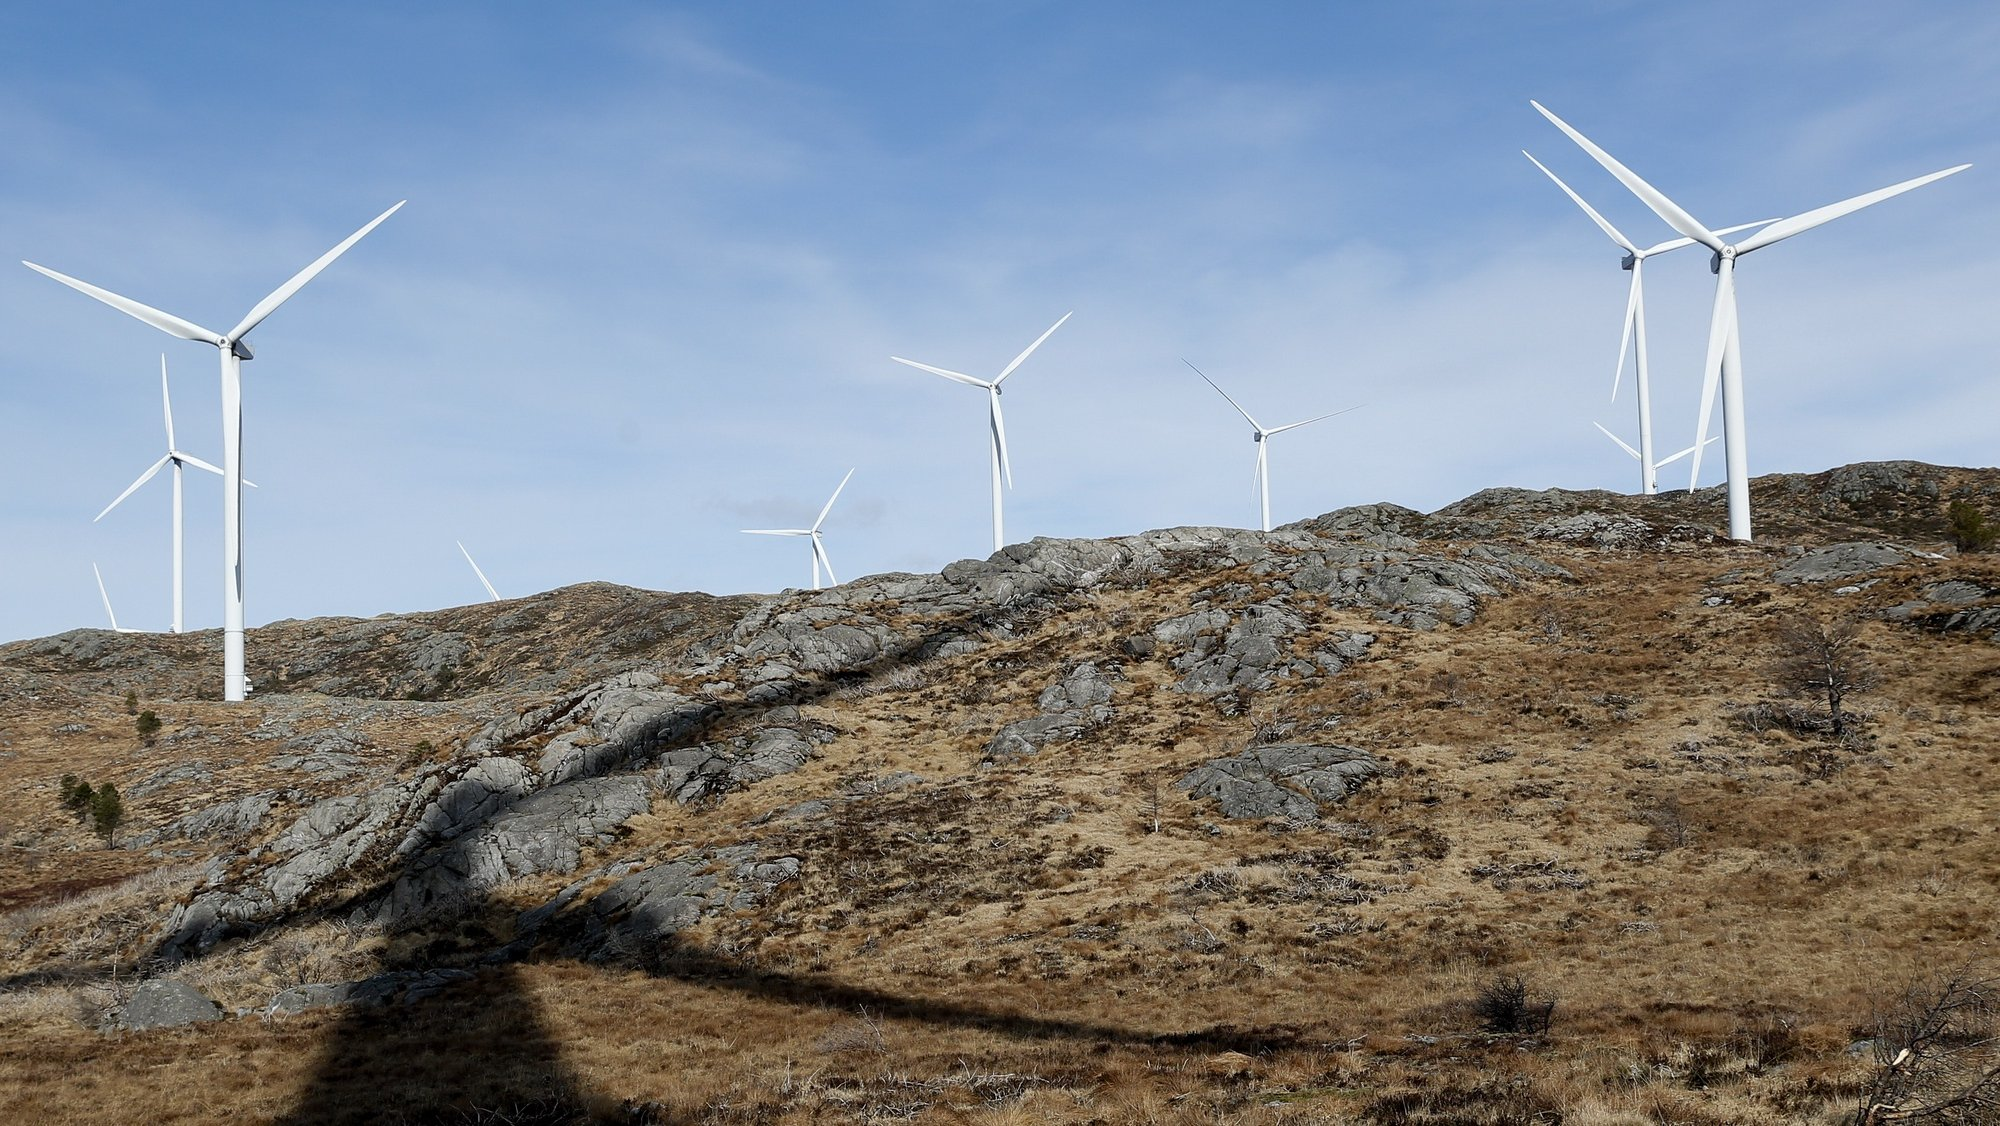 epa07478791 Wind turbines in Midtfjellet wind farm in Fitjar, Norway, 01 April 2019. The Norwegian Water Resources and Energy Directorate (NVE) submitted its proposal for a national framework for wind power on land. In the proposal, NVE points out 13 areas in Norway as the most suitable for developing wind power on land.  EPA/Jan Kare Ness  NORWAY OUT